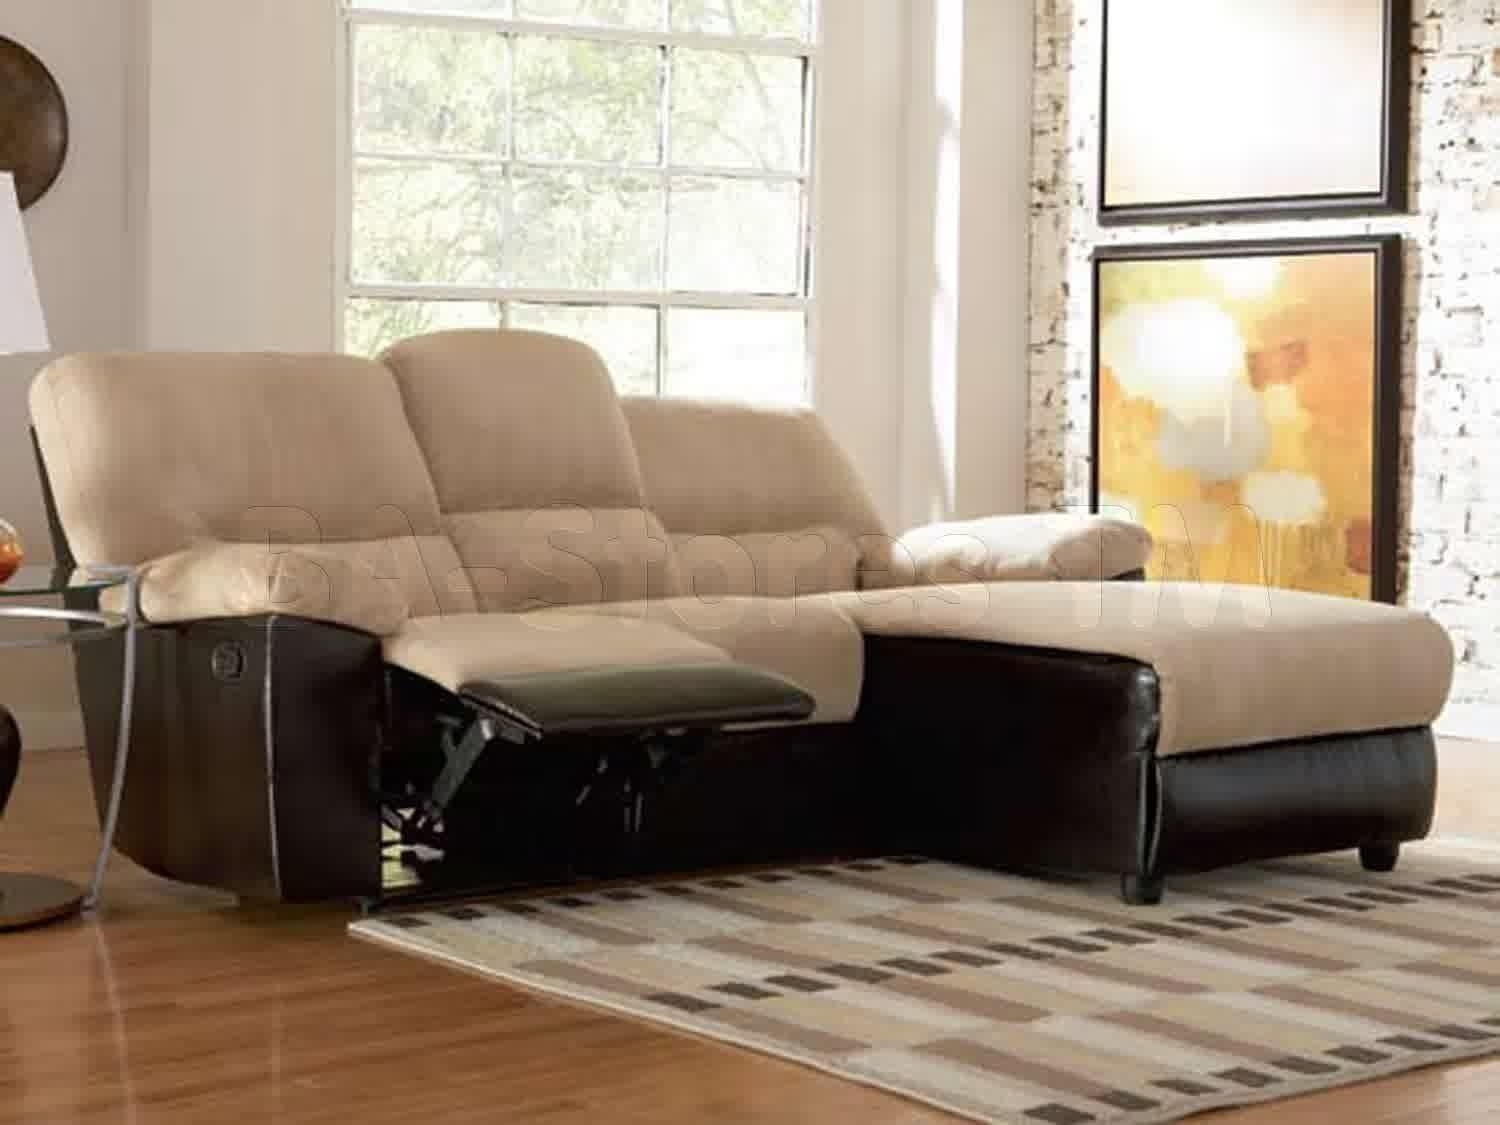 Apartment Sectional Sofa Bed | Tehranmix Decoration In Apartment Sofa Sectional (Image 4 of 15)